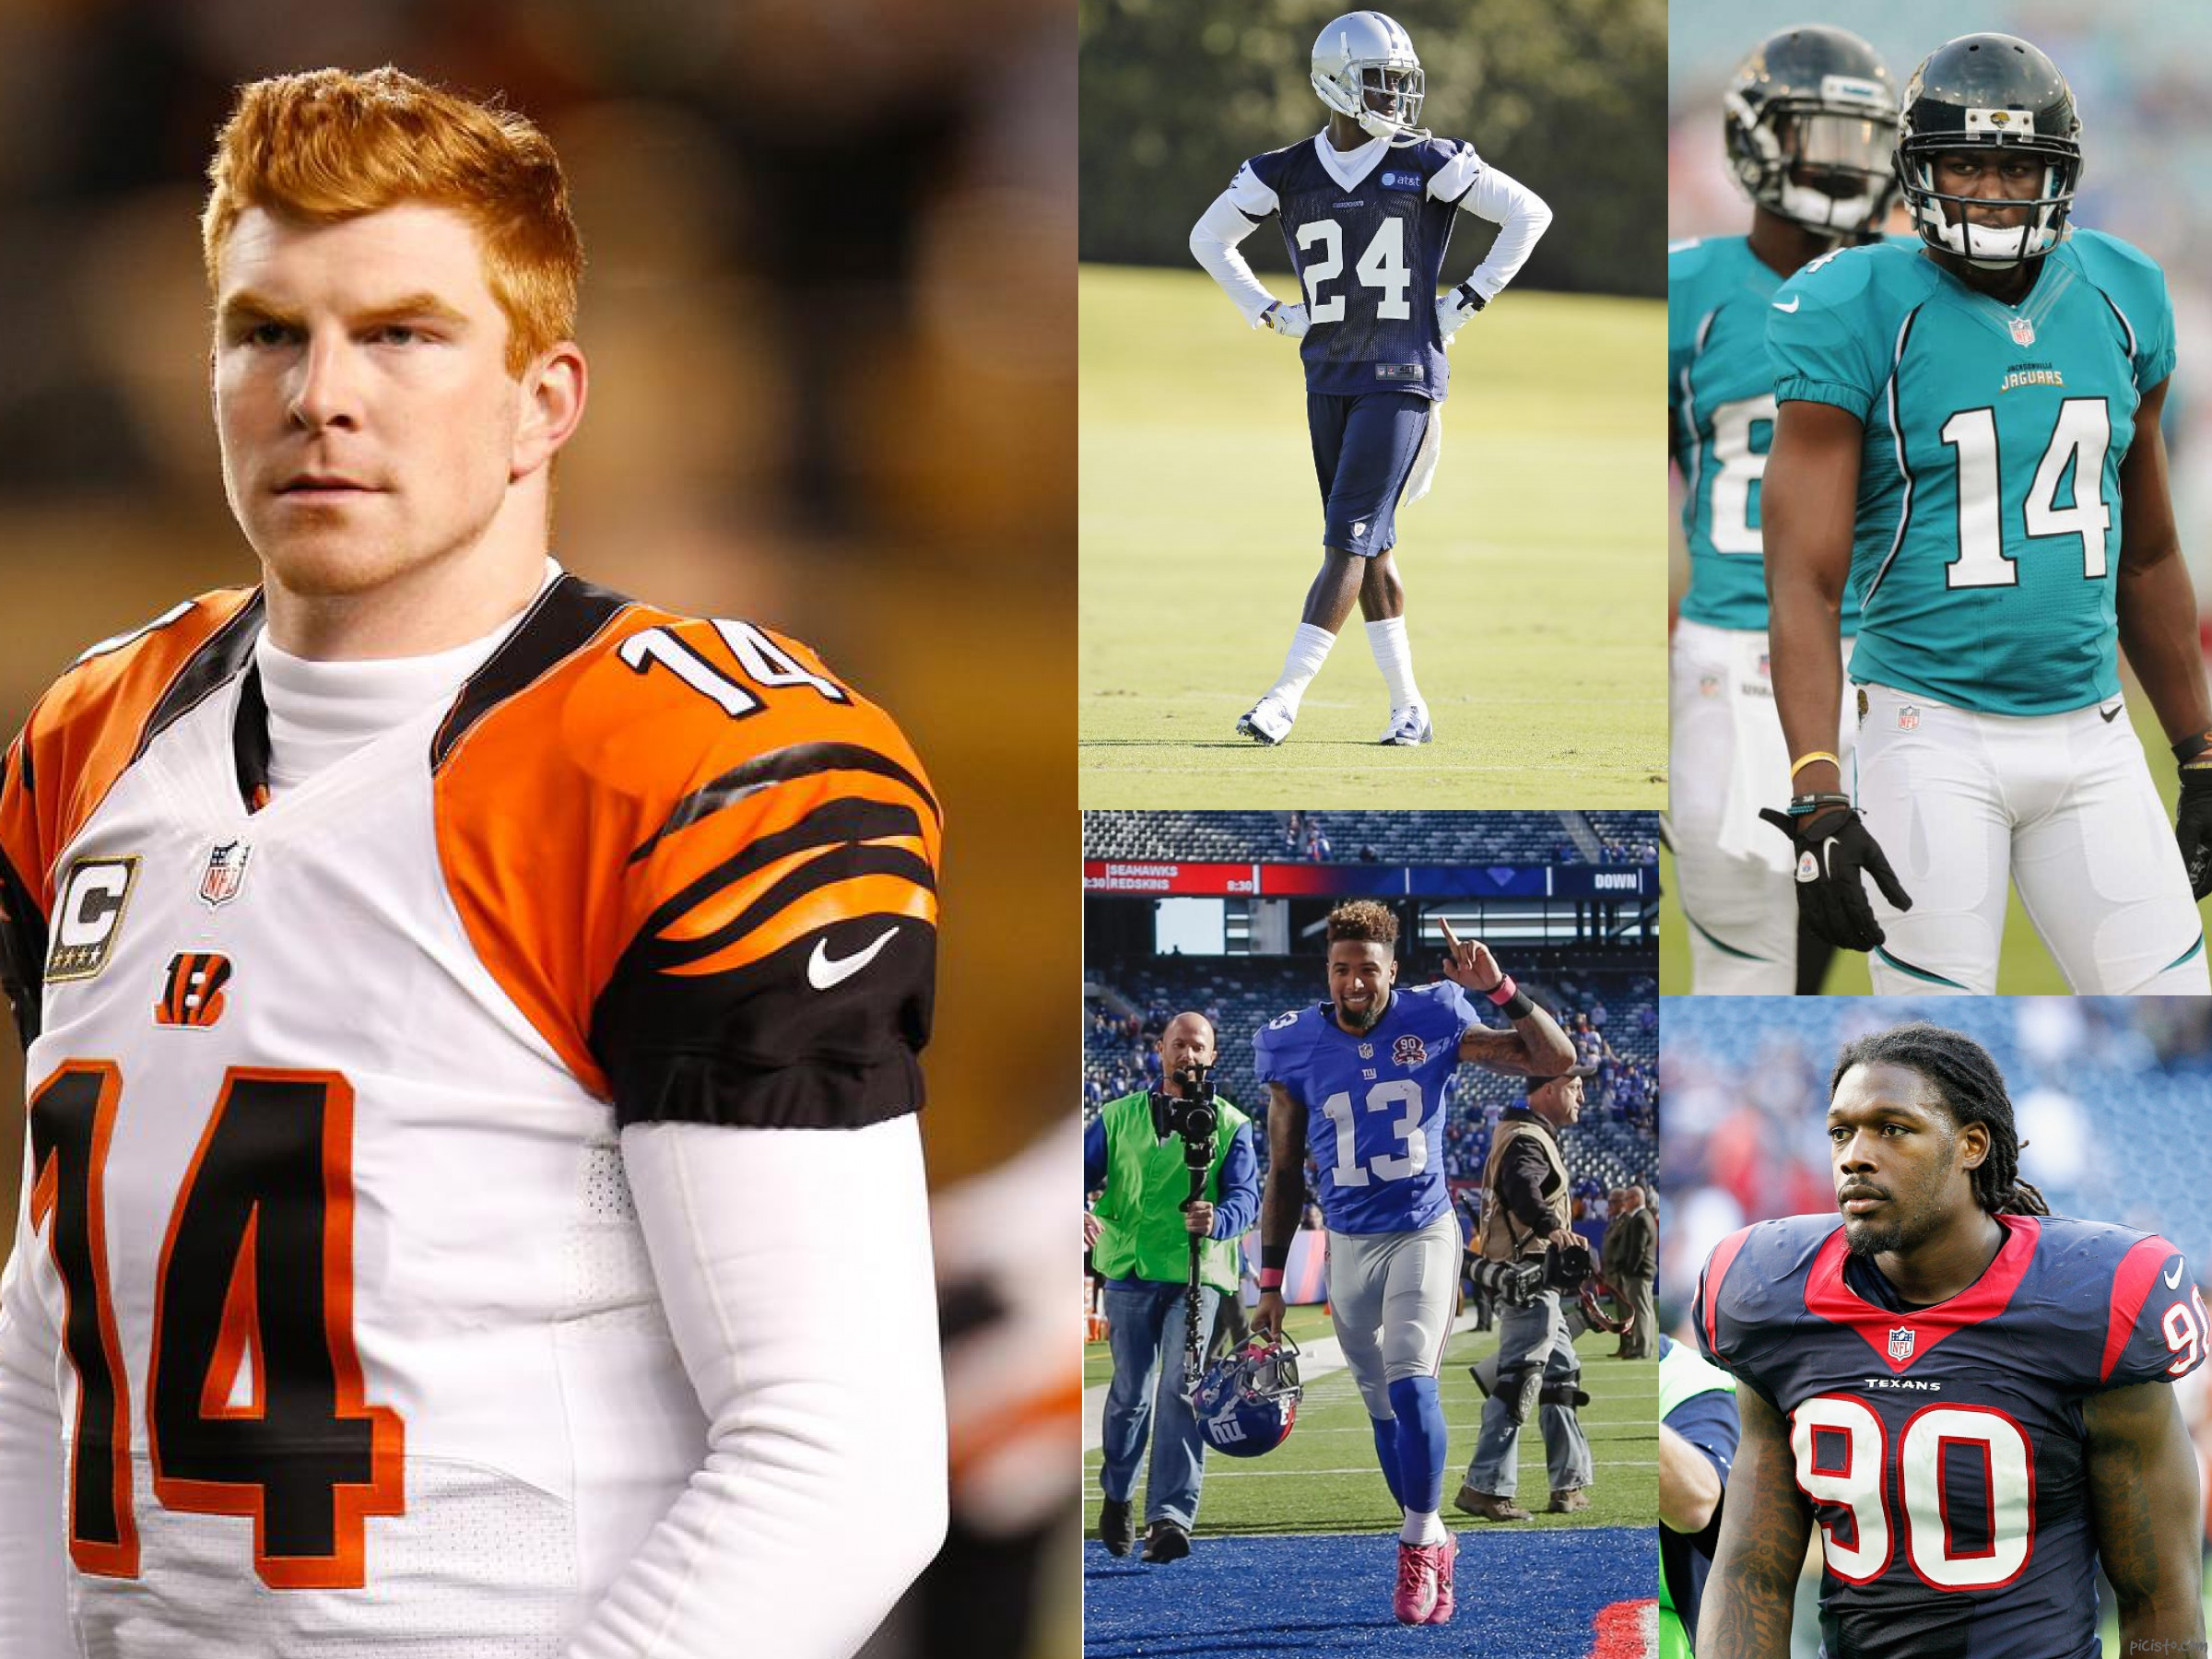 Cowboys Blog - Cowboys Draft: Analysis: Is QB the Most Risky Position to Draft?